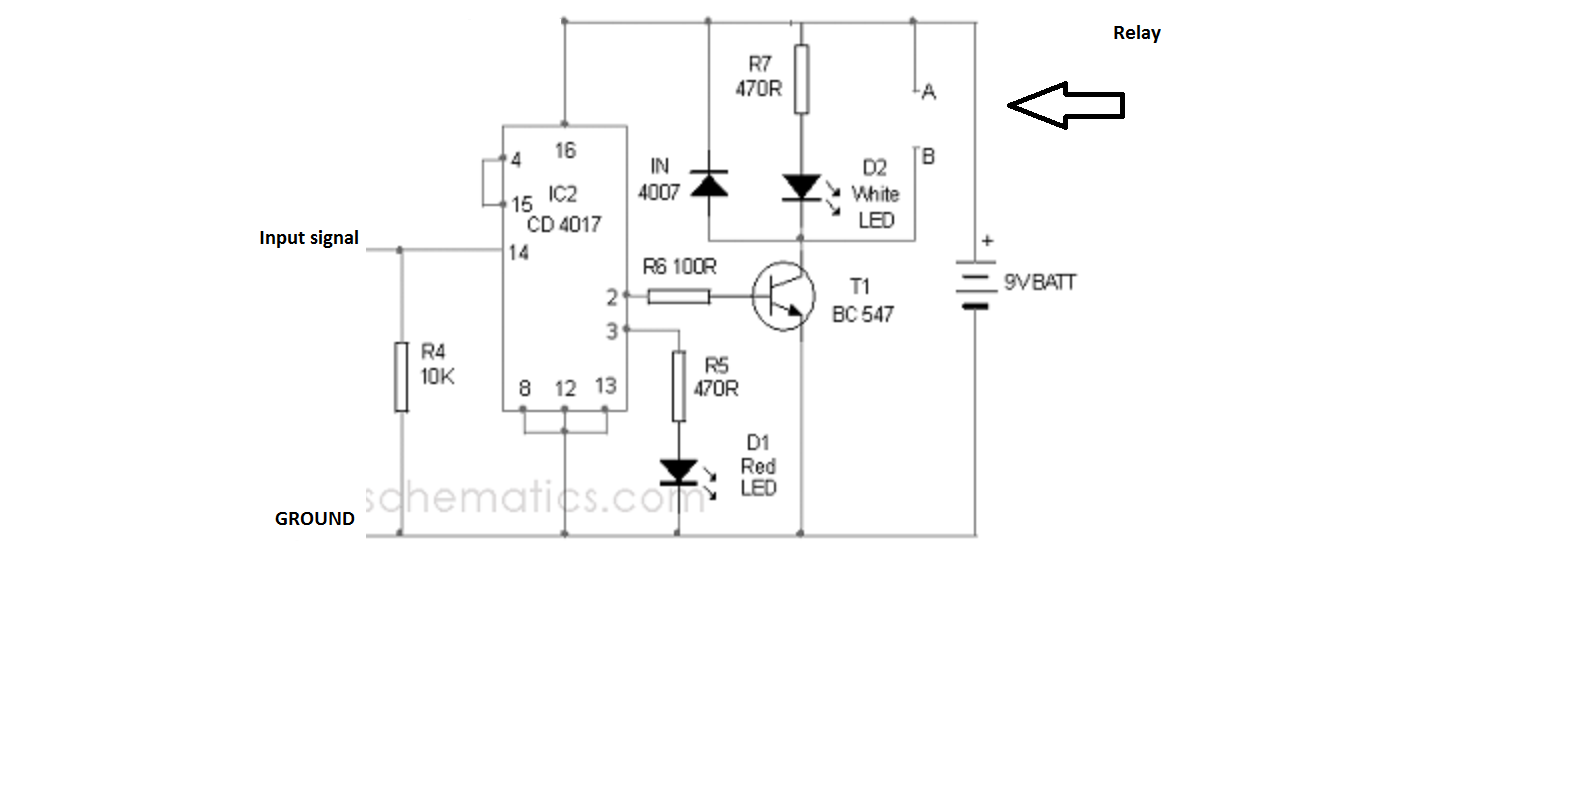 Electronics Fusions Remote Control Circuit Through RF Without - Clap sensitive on off relay